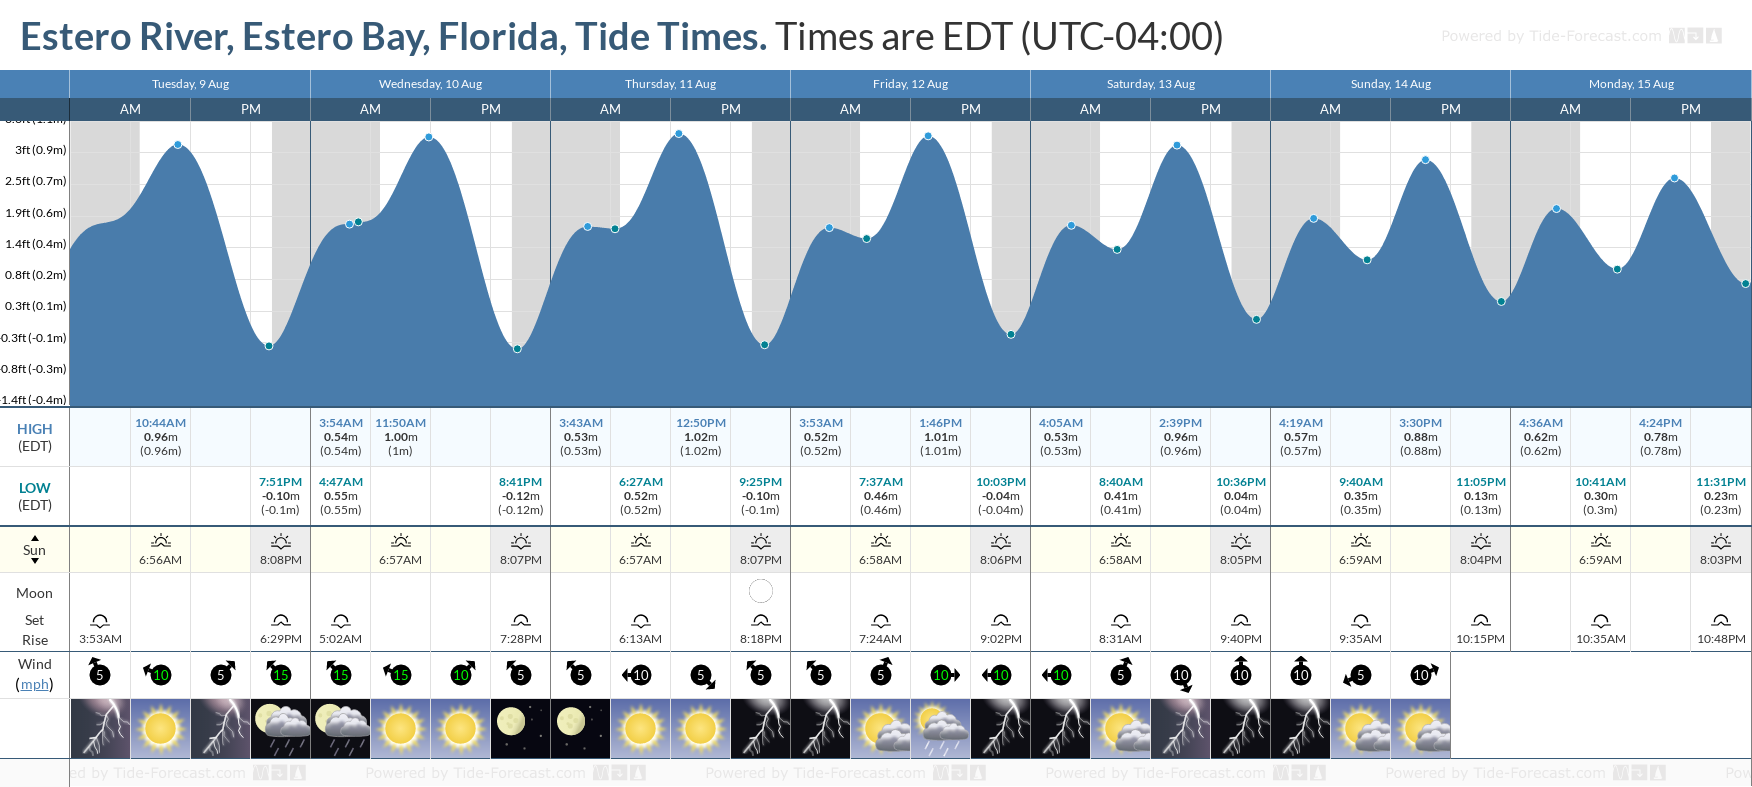 Estero River, Estero Bay, Florida Tide Chart including high and low tide tide times for the next 7 days